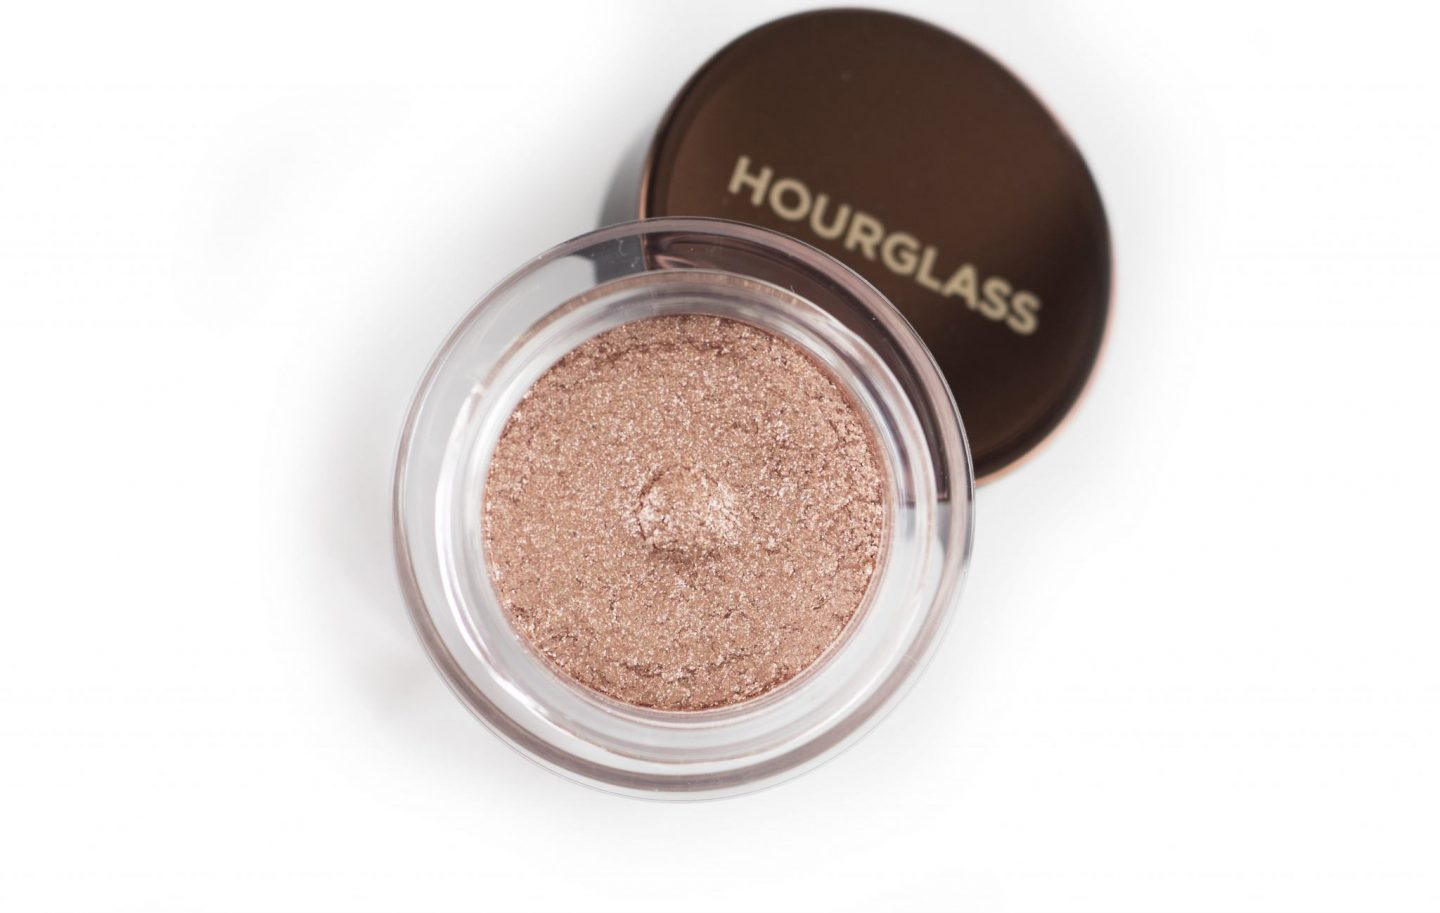 Hourglass REFLECT Scattered Light Glitter Eyeshadow